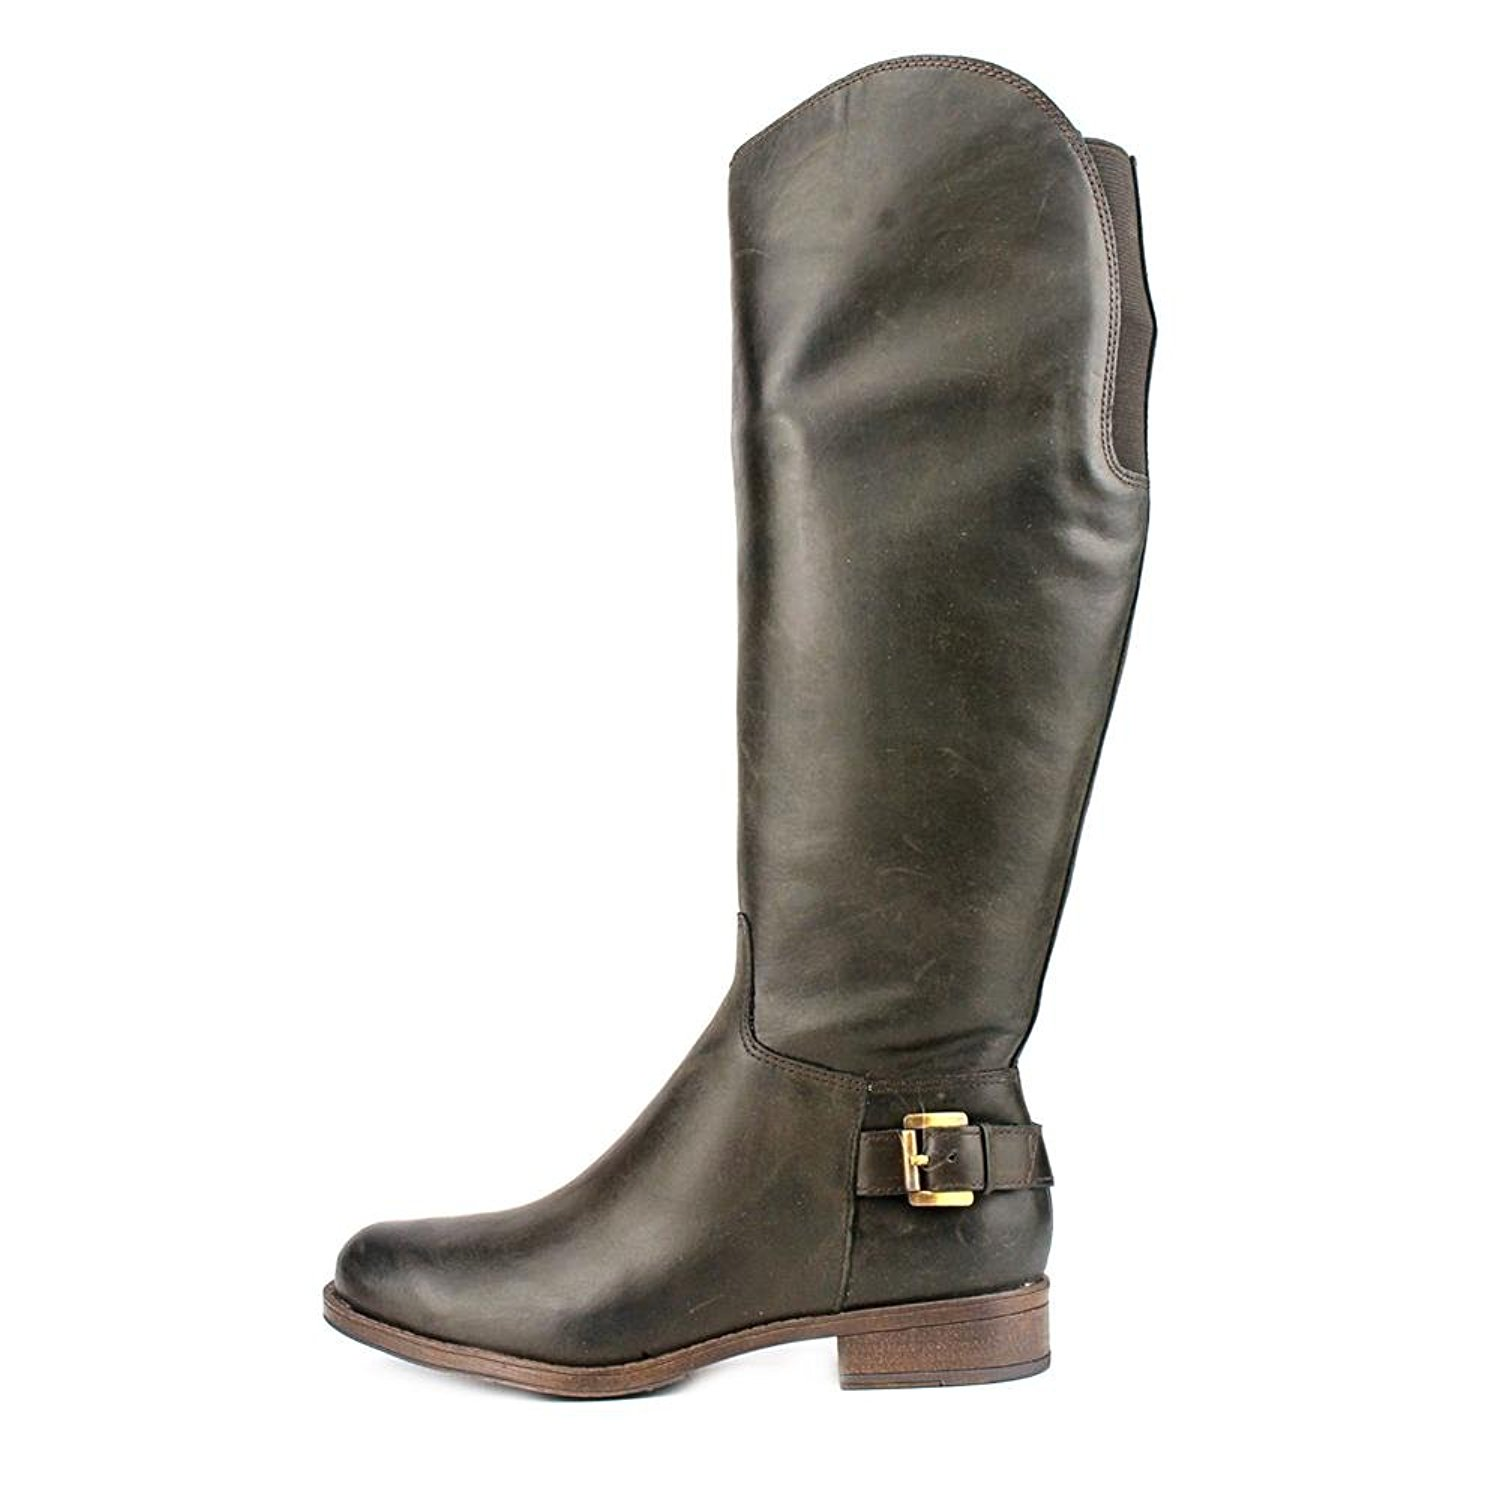 GUESS Womens Lurie Leather Almond Toe Knee High Fashion Boots Brown Size 6.5 i